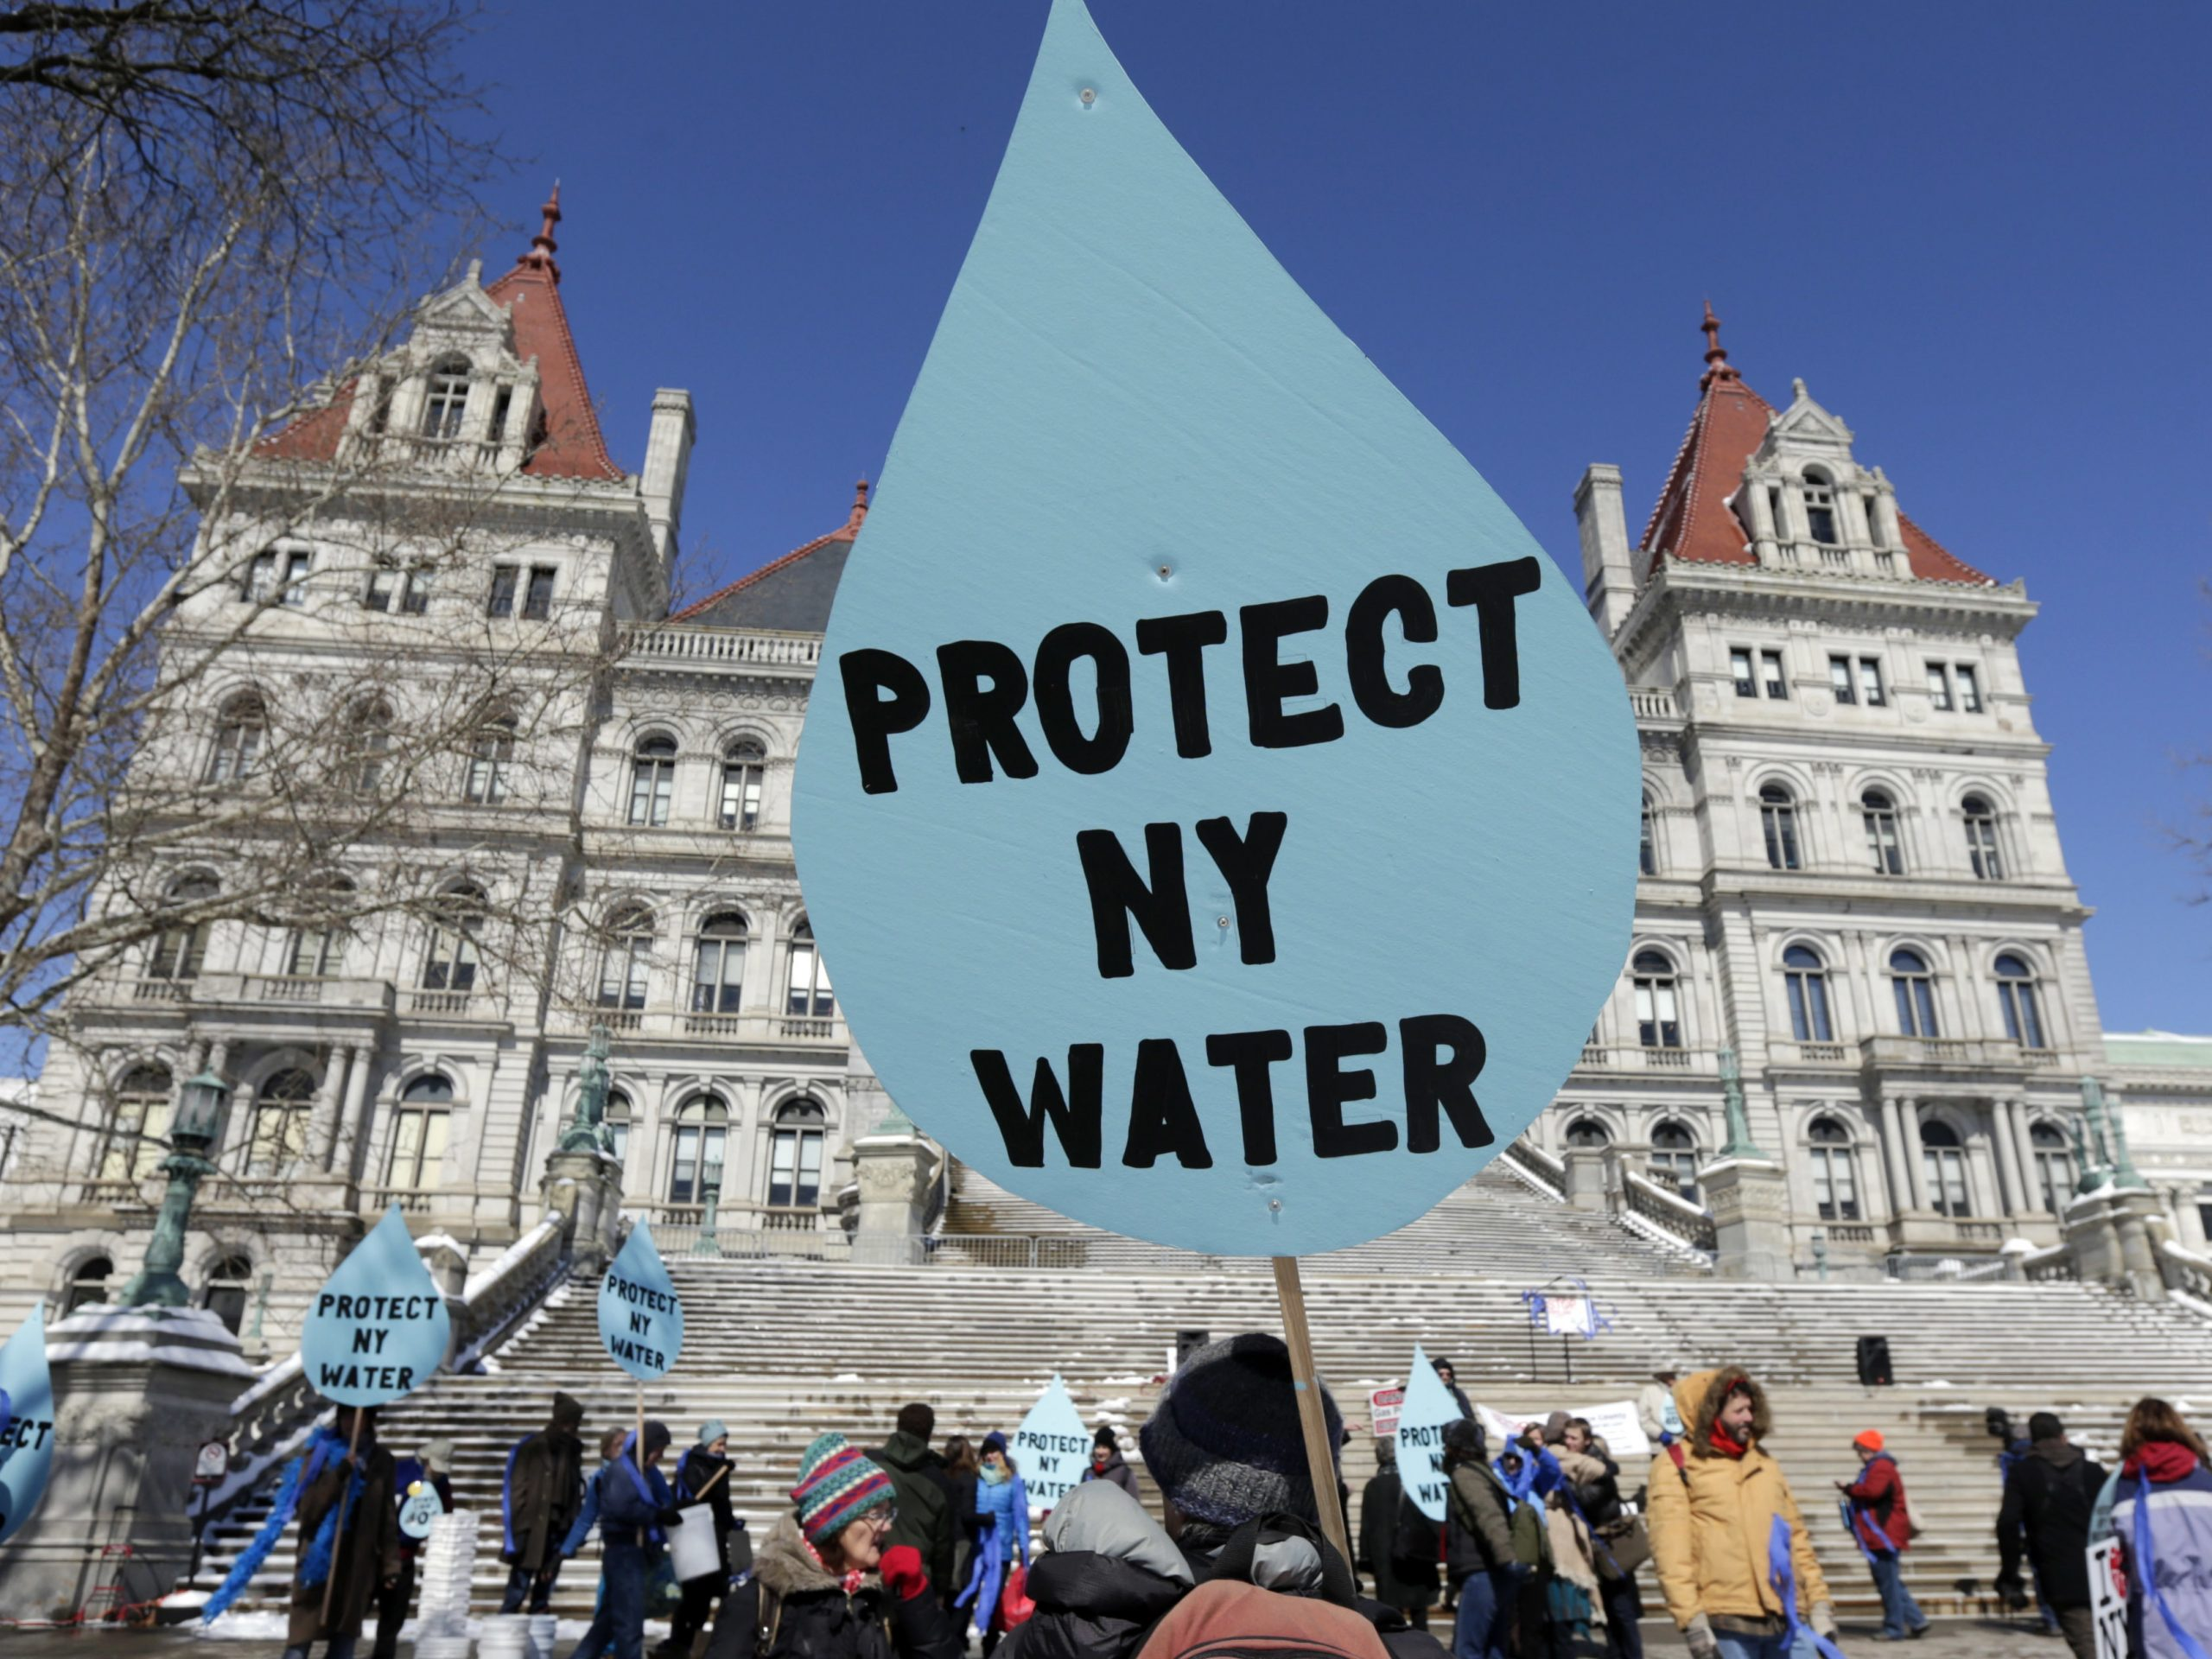 After years of protests against the Constitution Pipeline, New York recently denied a key water quality permit for the project. A new EPA rule would make it harder for states to do that.